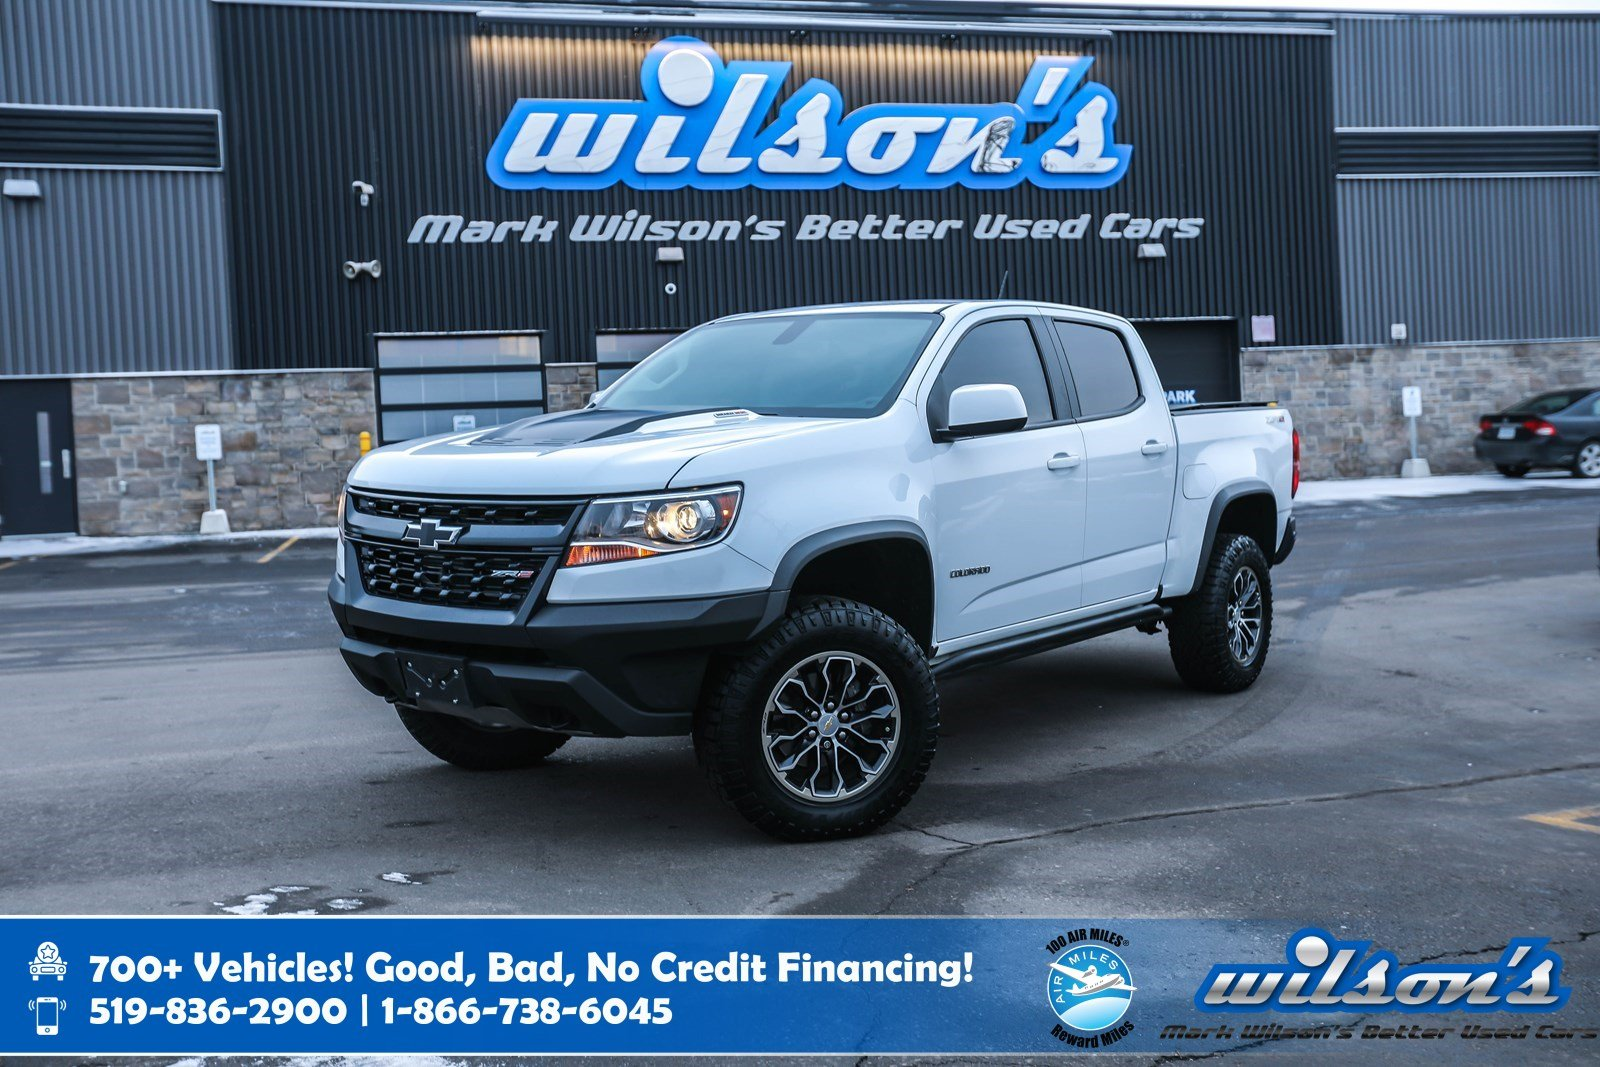 Certified Pre-Owned 2017 Chevrolet Colorado ZR2 Diesel Crew Cab 4x4, Leather, Navigation, Heated Seats, Remote Start,Tri-Fold Tonneau Cover